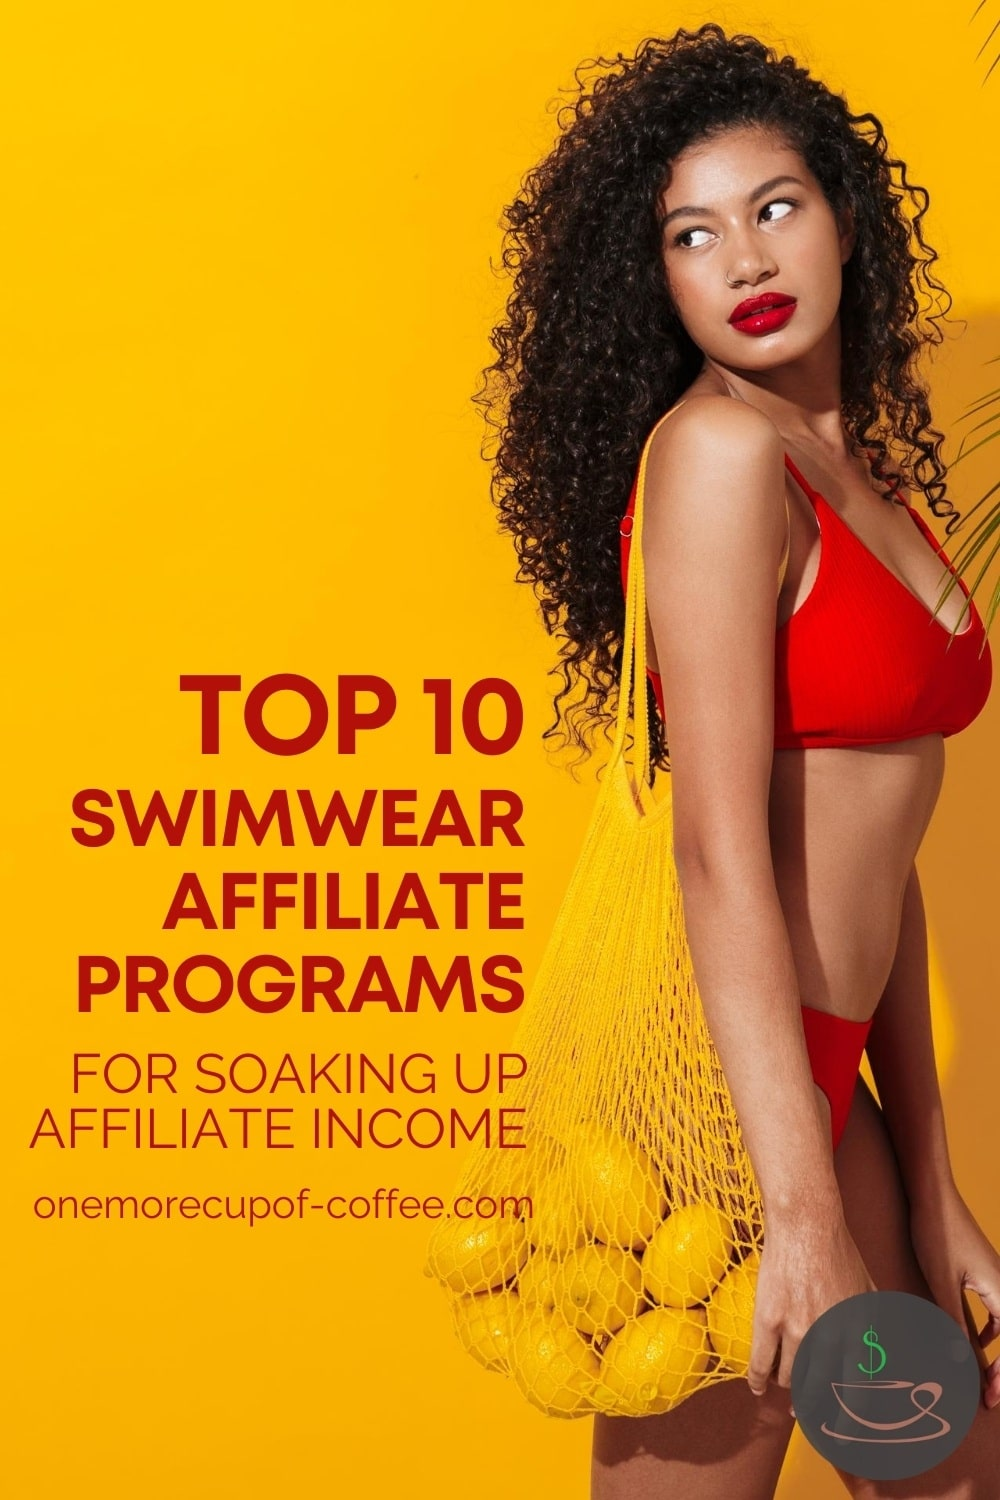 """woman in two-piece red swimwear against a yellow background, carrying a yellow net bag with lemons, with text overlay """"Top 10 Swimwear Affiliate Programs"""""""